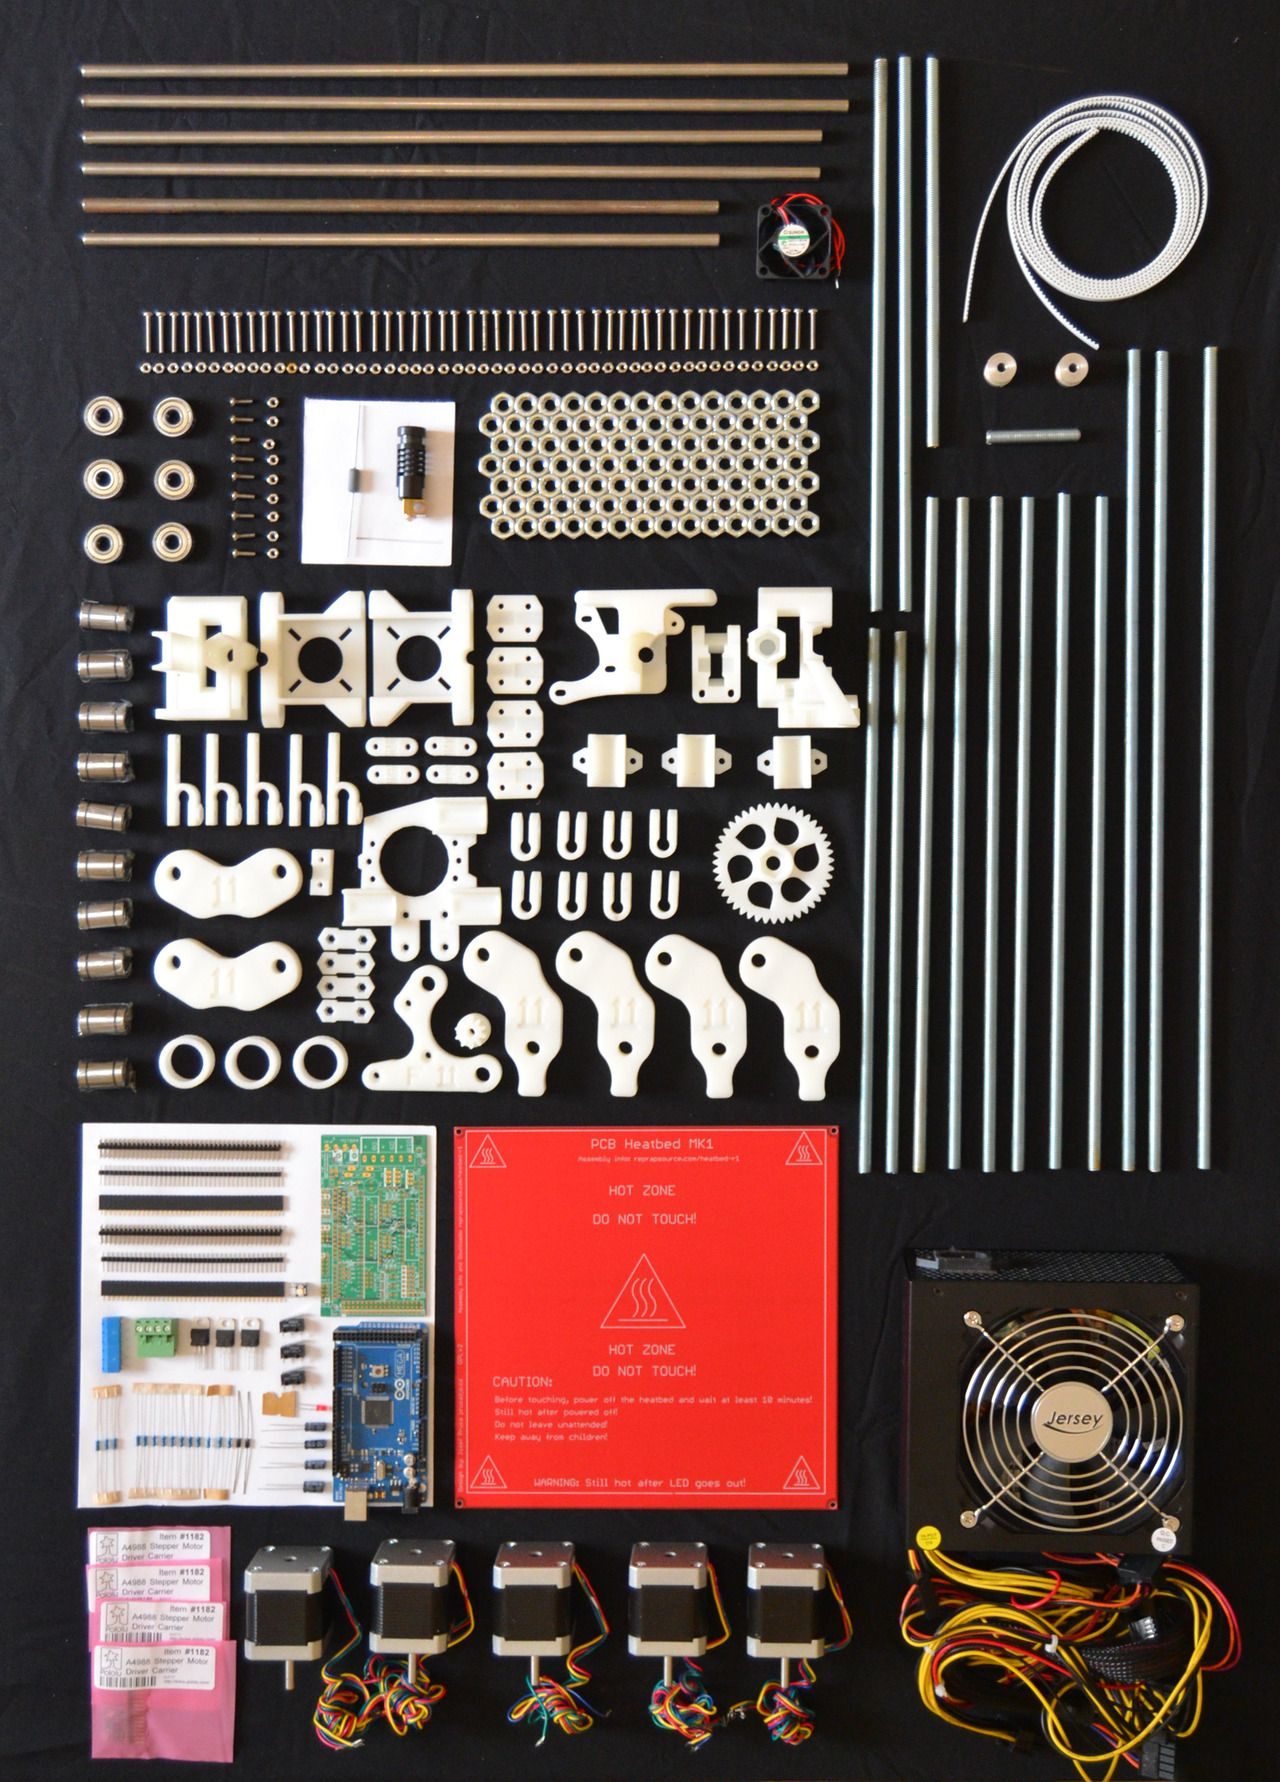 Things Organized Neatly Tumblr Yes This Makes Me Happy Digital Arduino Controlled Cnc 3d Printer Hybrid Wiring The Electronics Diy Router